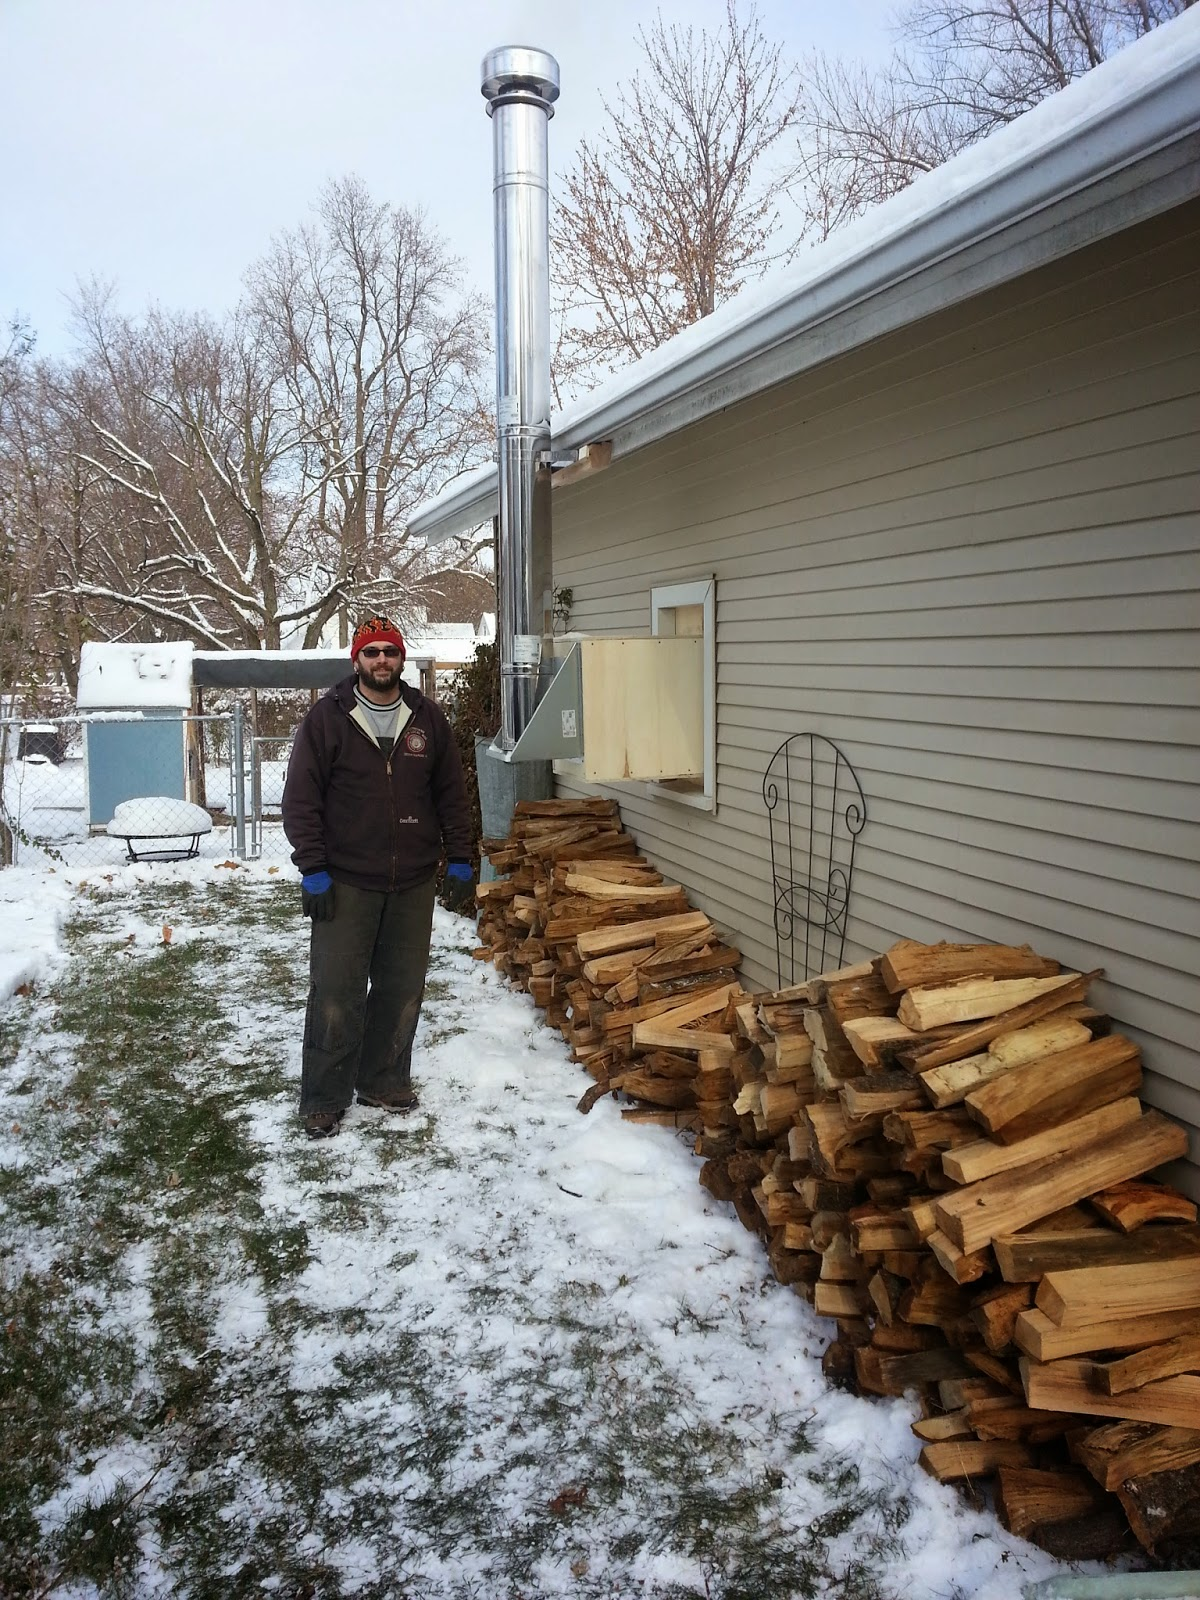 If you are, however, looking for instructions on how to install a wood stove  in your garage, John said he recommends good ol' Google. - The Sustainable Couple: Finally Installing A Garage Wood Stove.